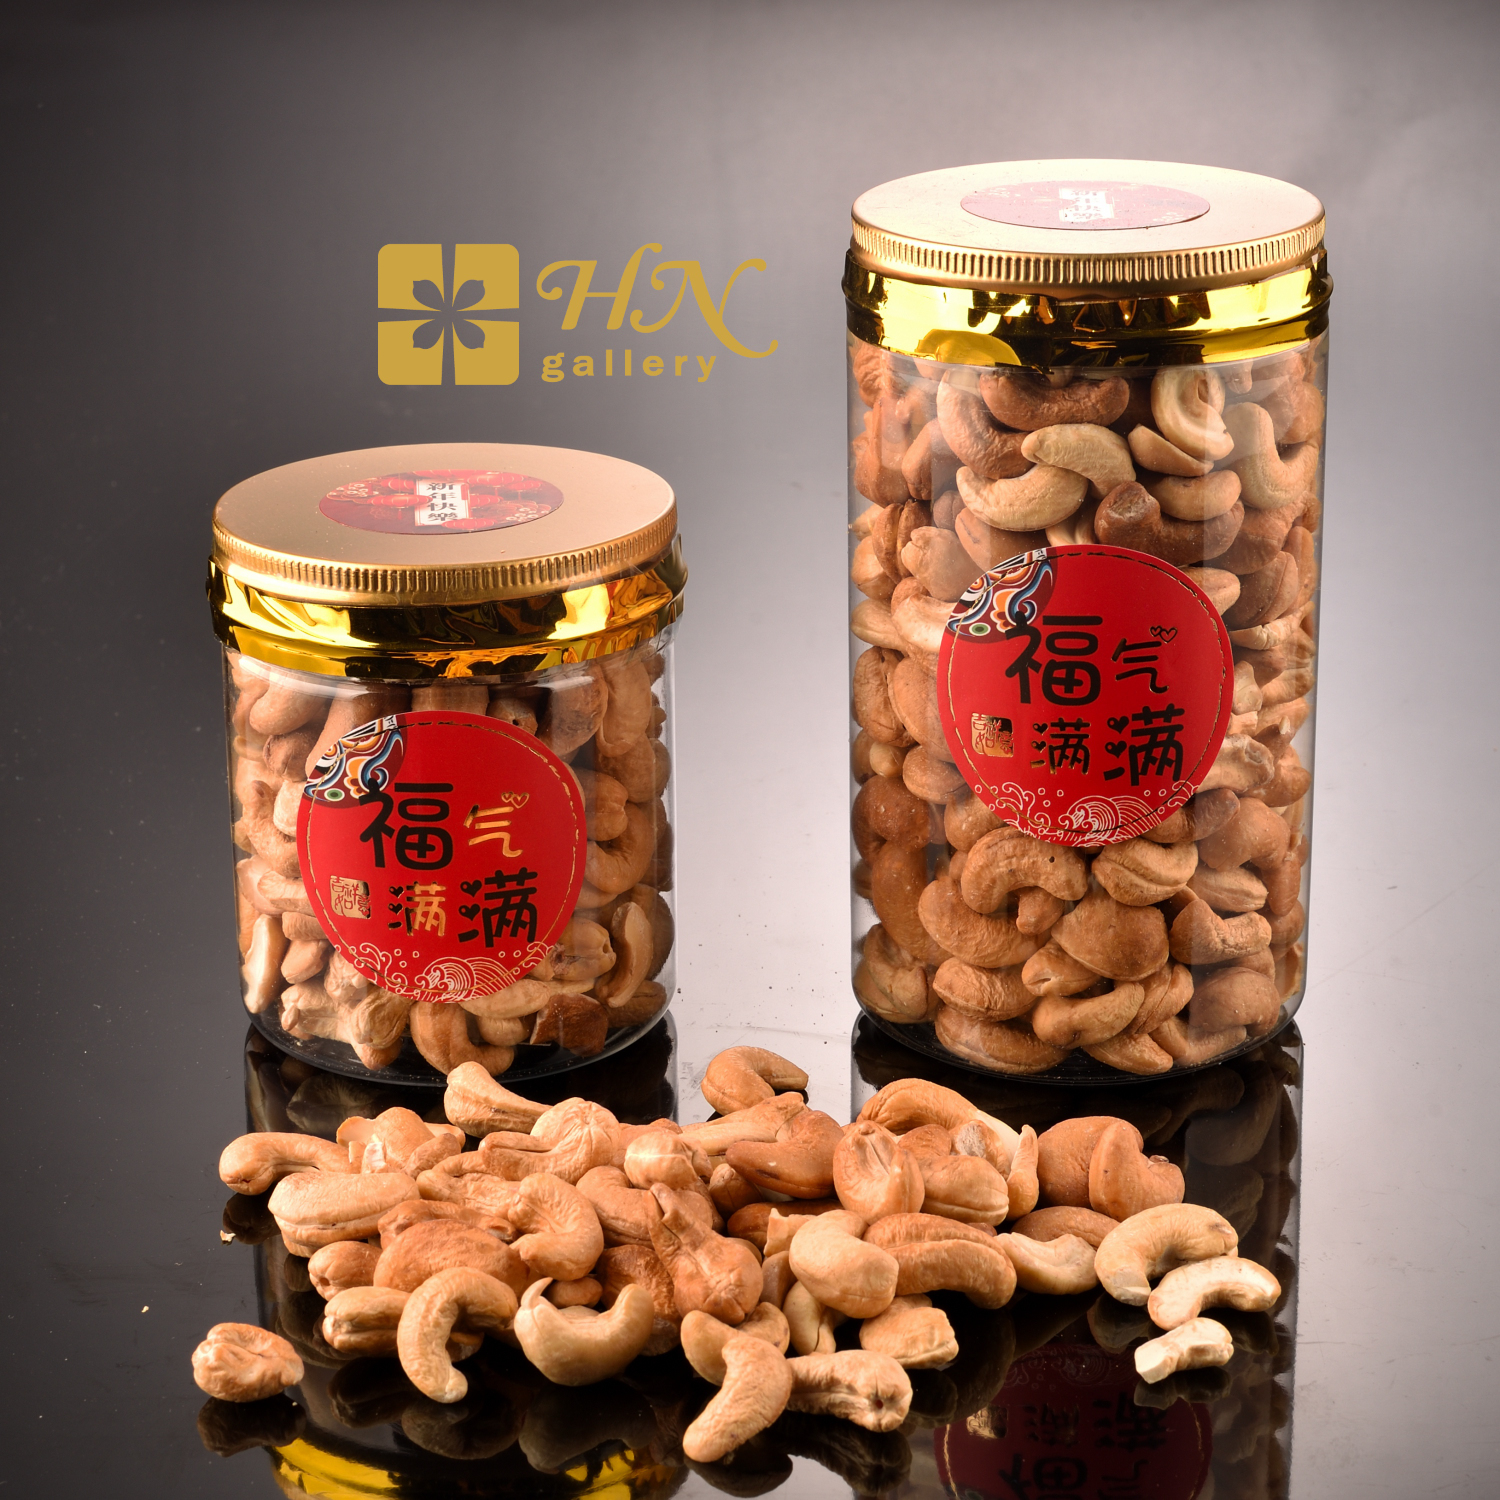 Roasted Cashew Nut 烤腰豆 Sell by per bottle (180g,360g)